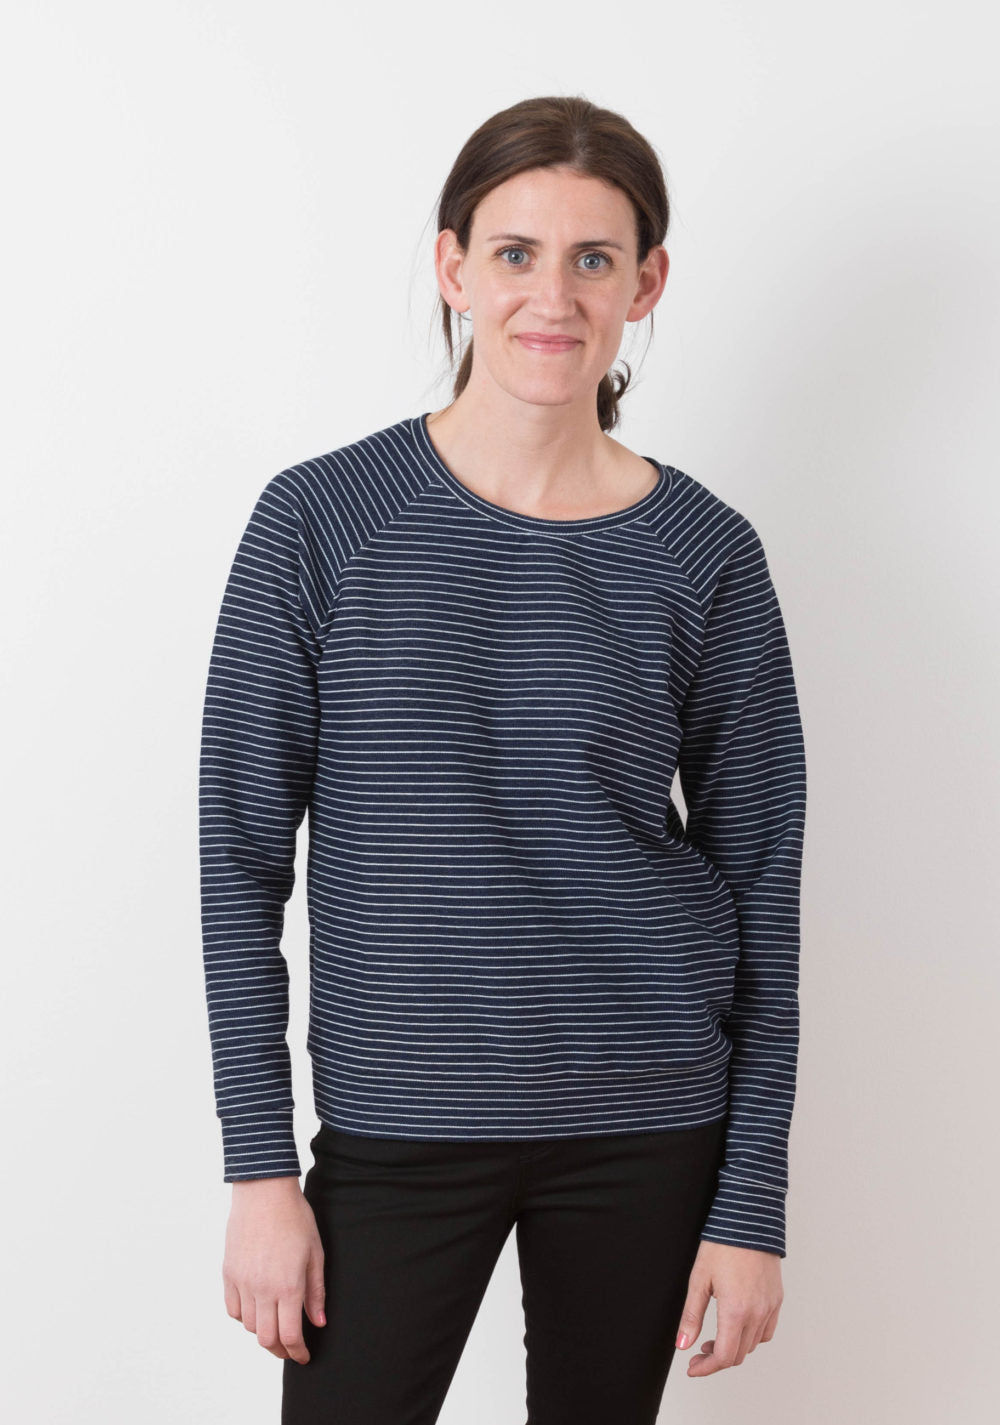 Linden Sweatshirt - Grainline Studio - Patterns - Grainline Studio - Sew Me Sunshine